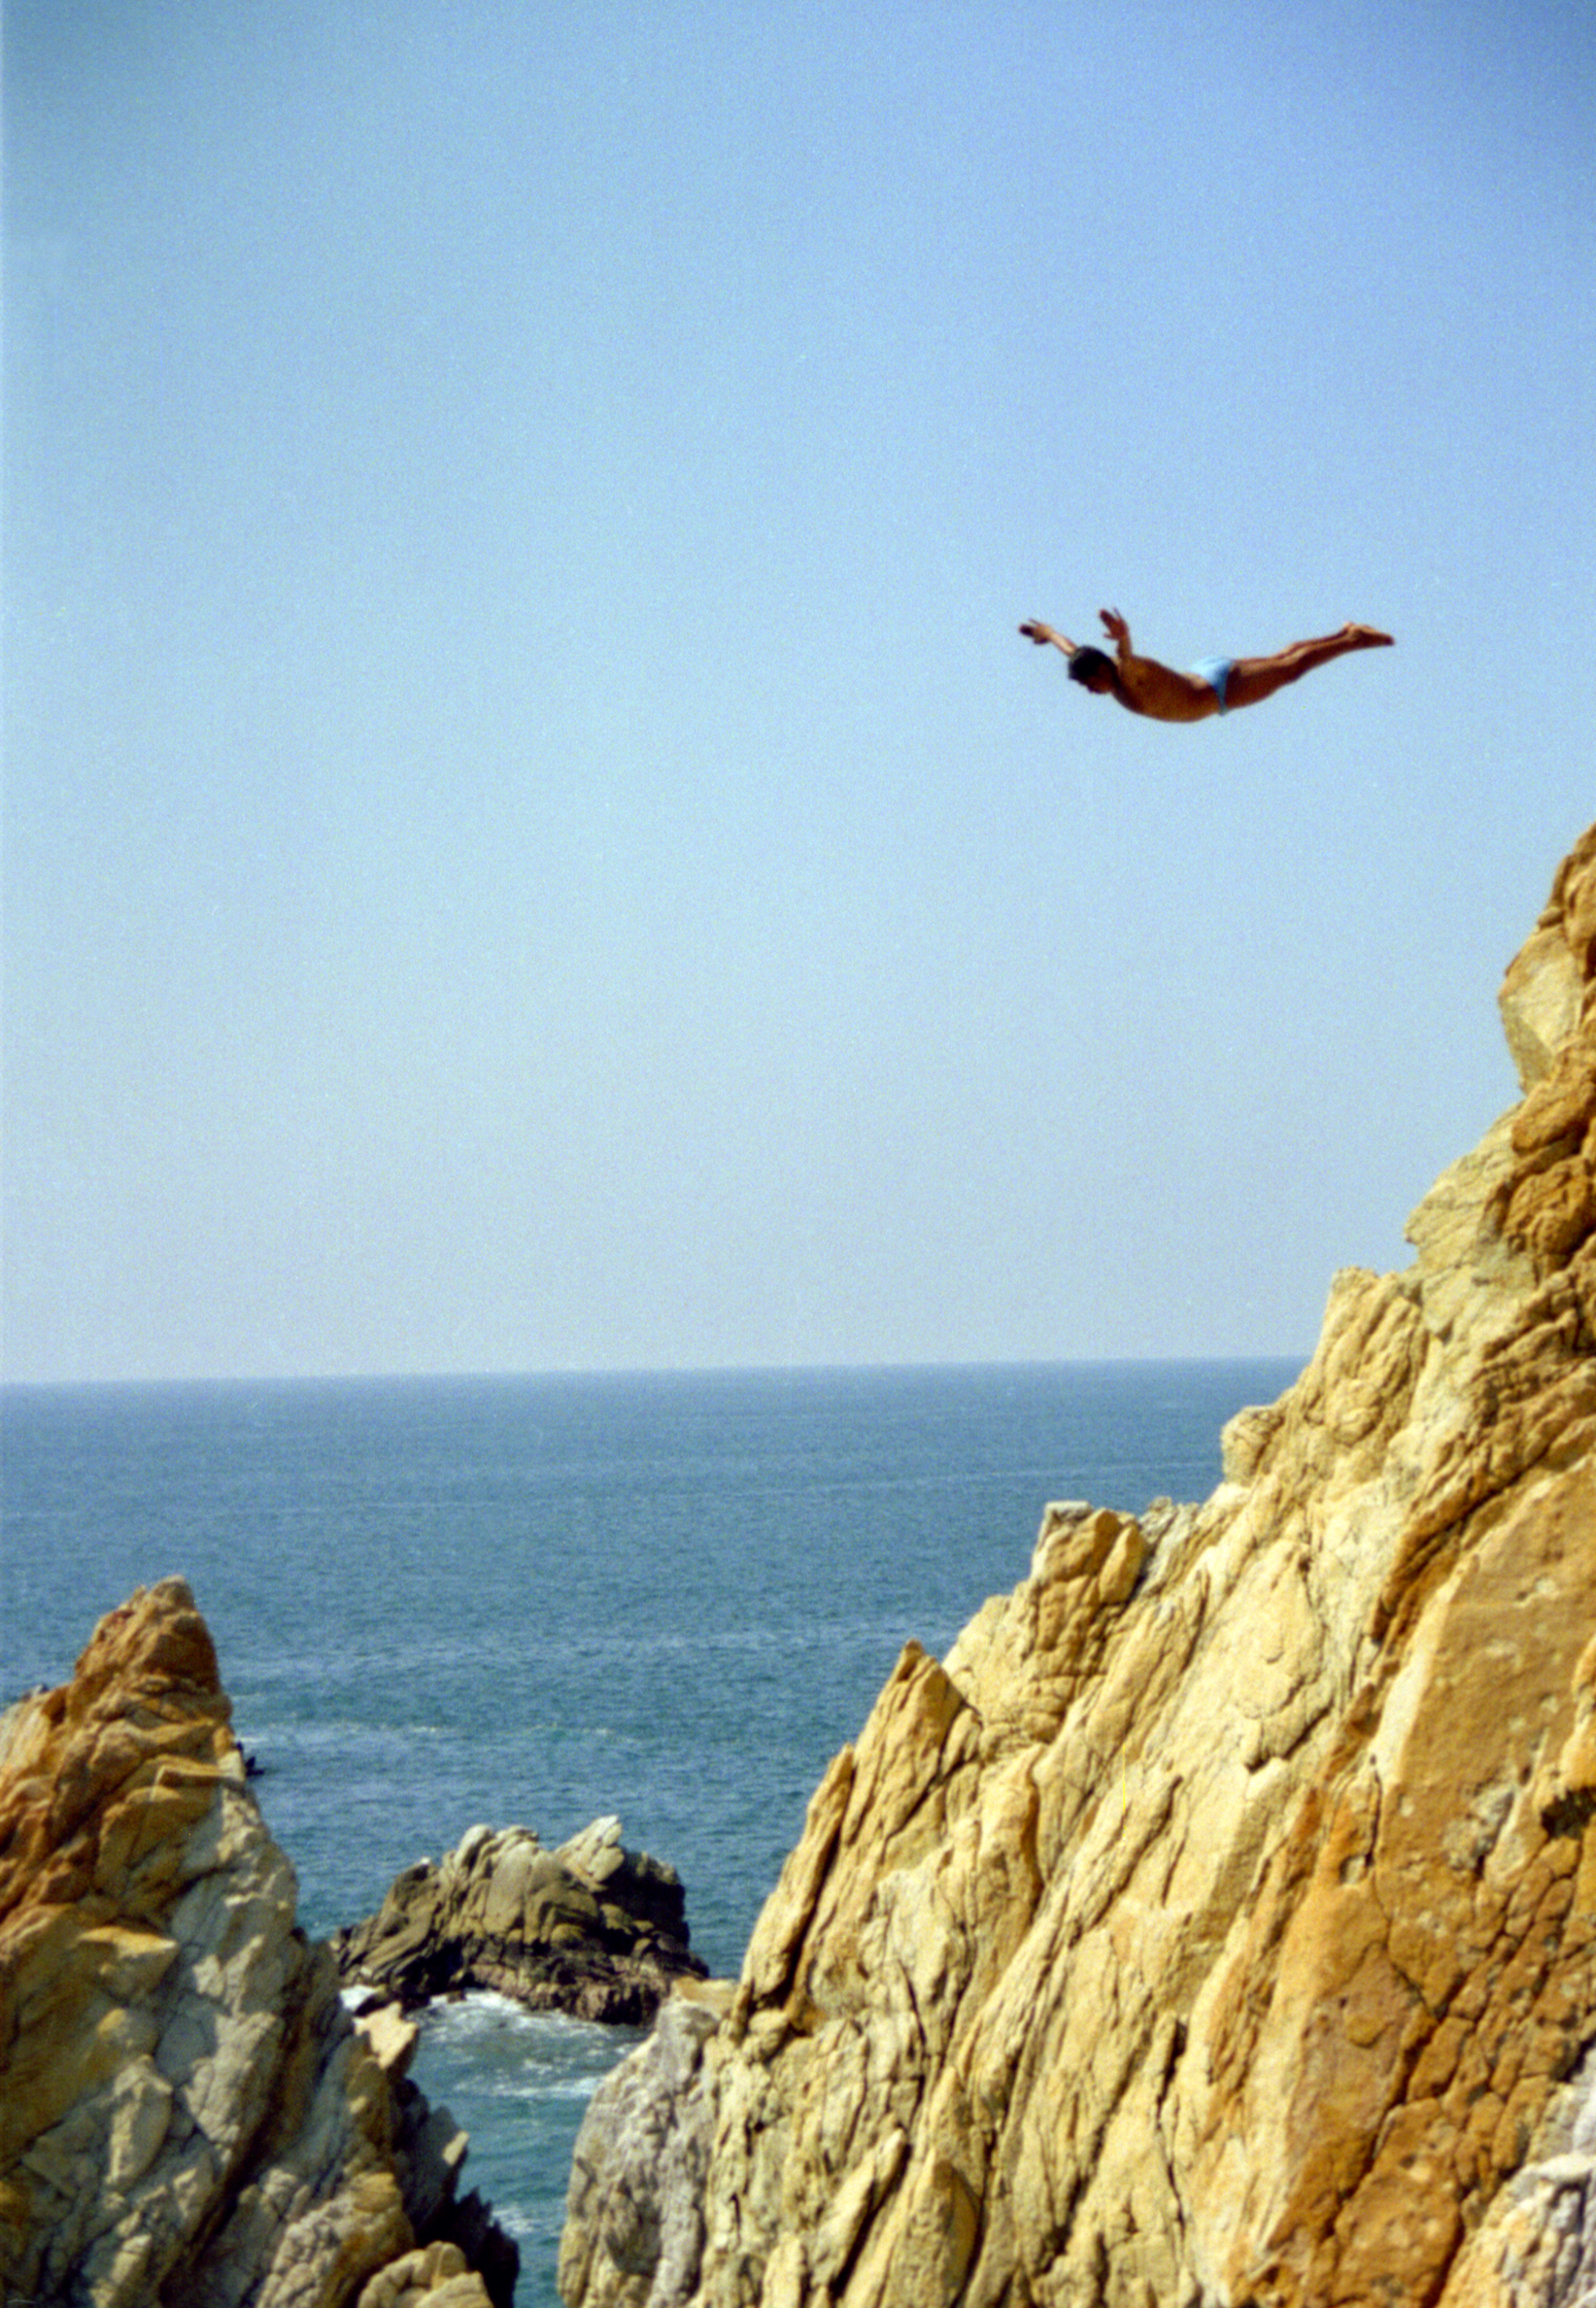 https://upload.wikimedia.org/wikipedia/commons/5/59/Acapulco_Cliff_Diver.jpg